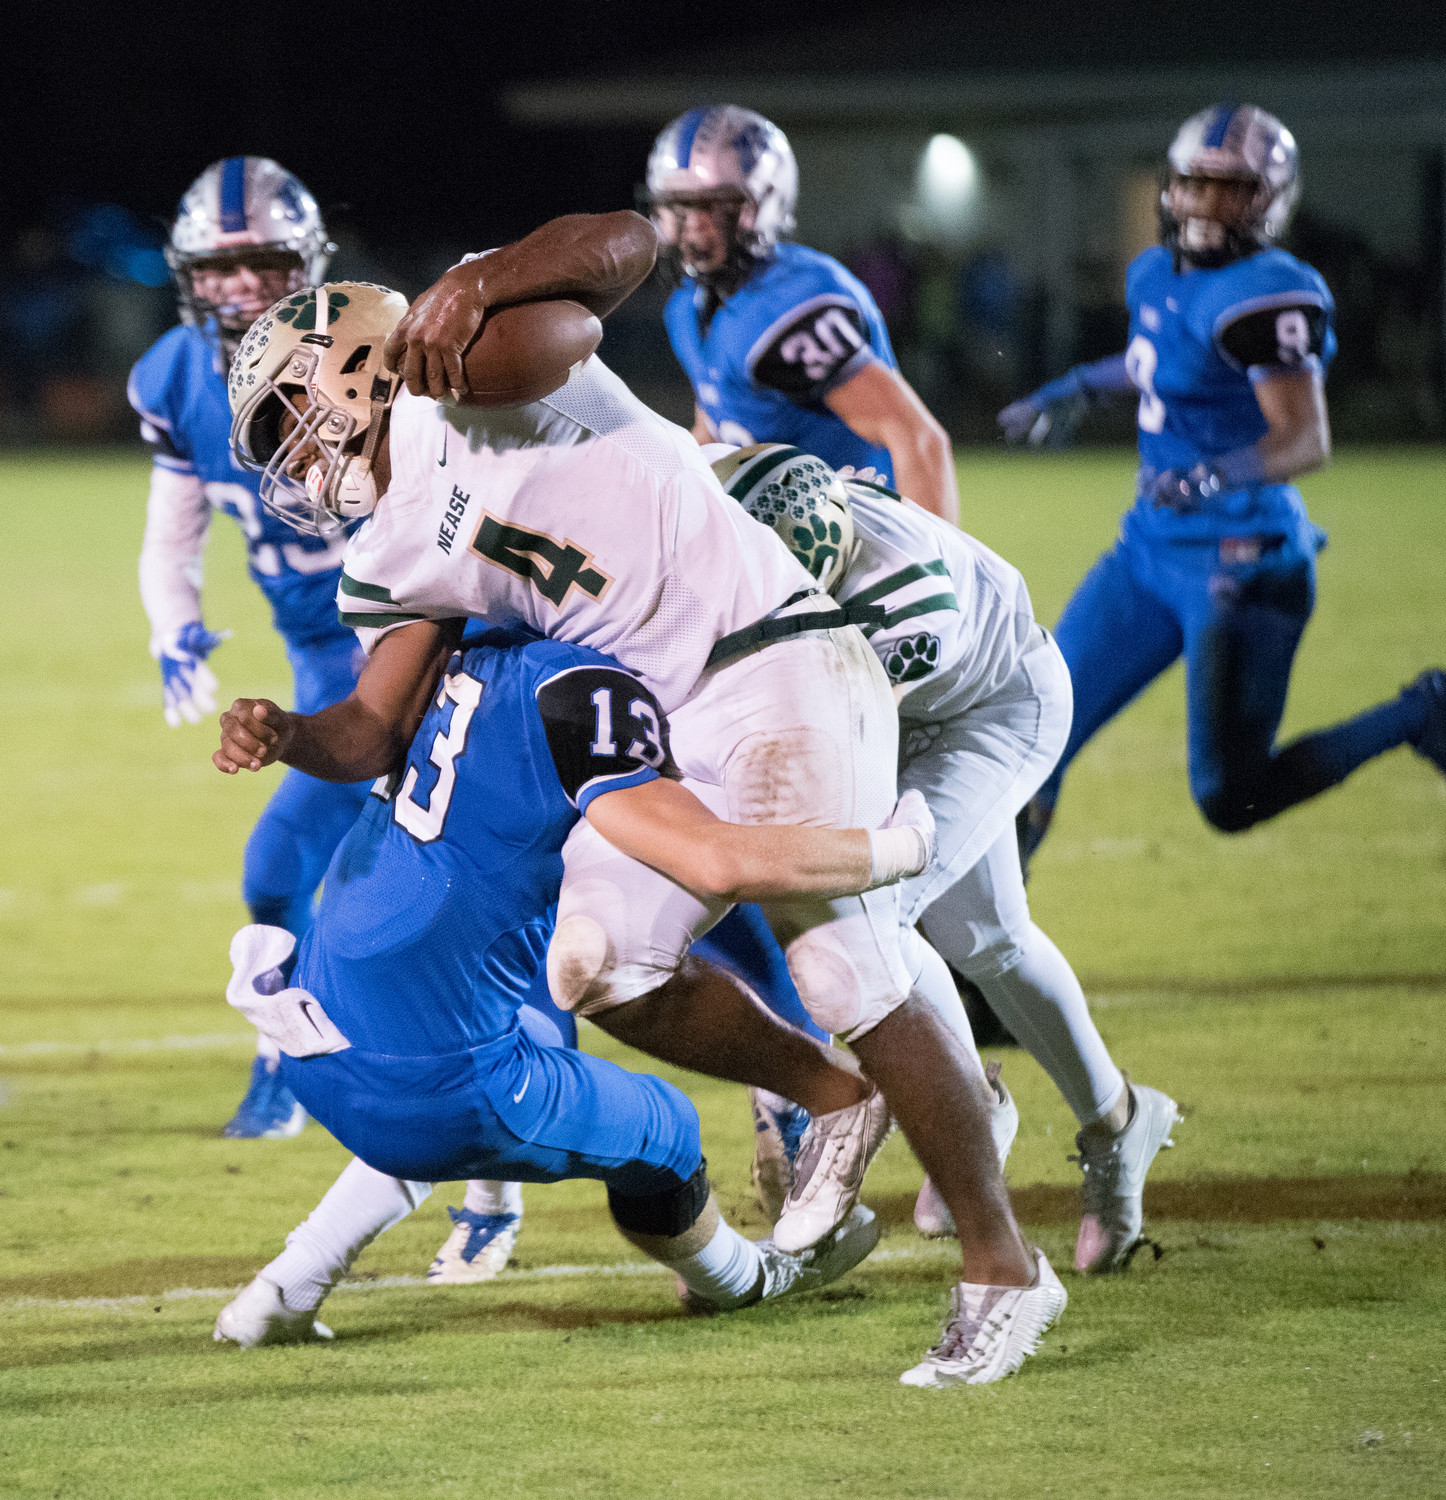 Nease running back Jareem Westcott is tackled by a Bartram Trail defender in last Friday's game.